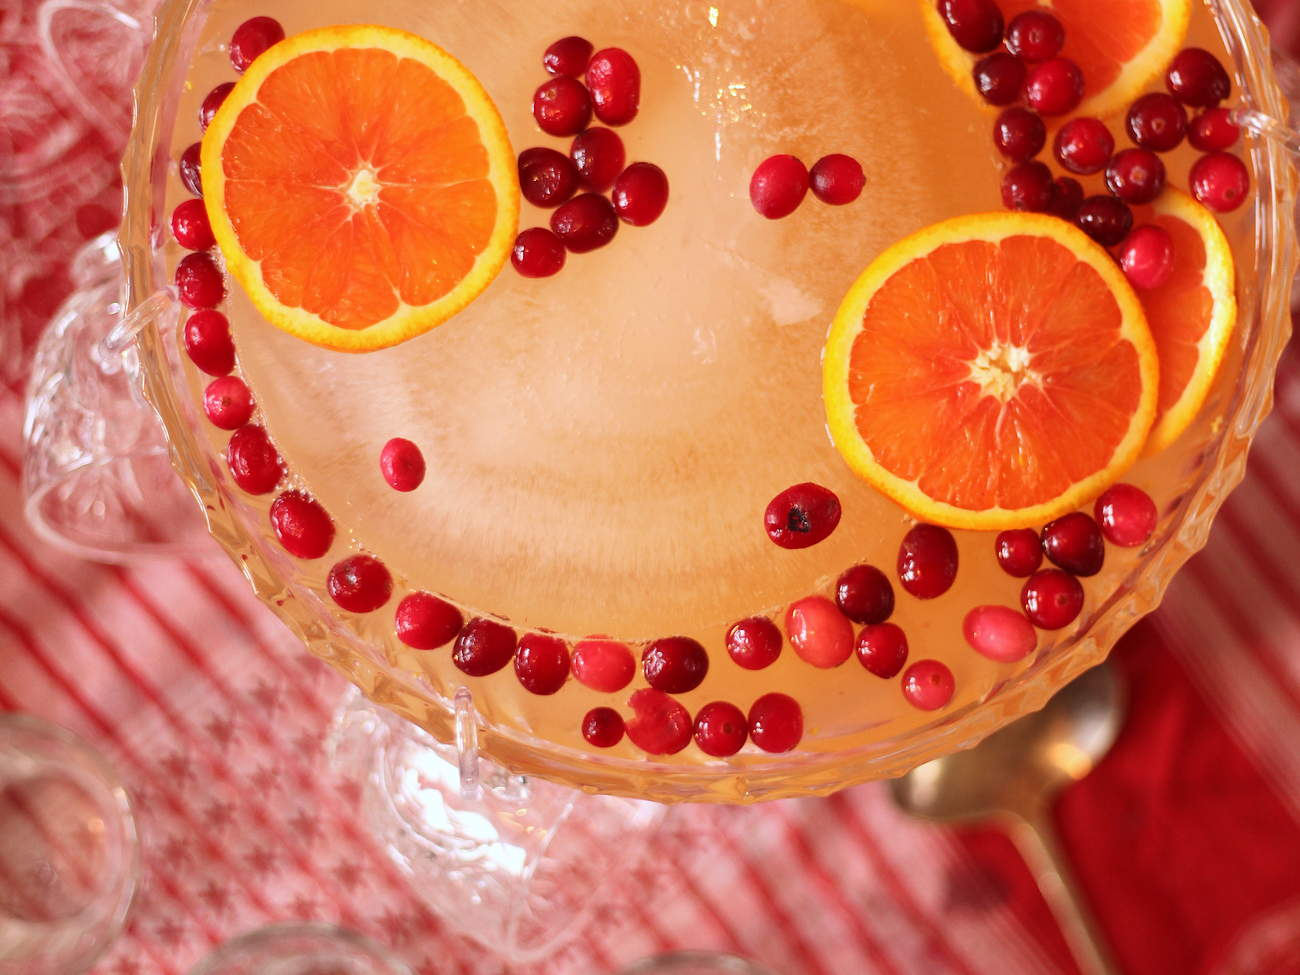 Party punch in a bowl garnished with cranberries and orange slices on a table